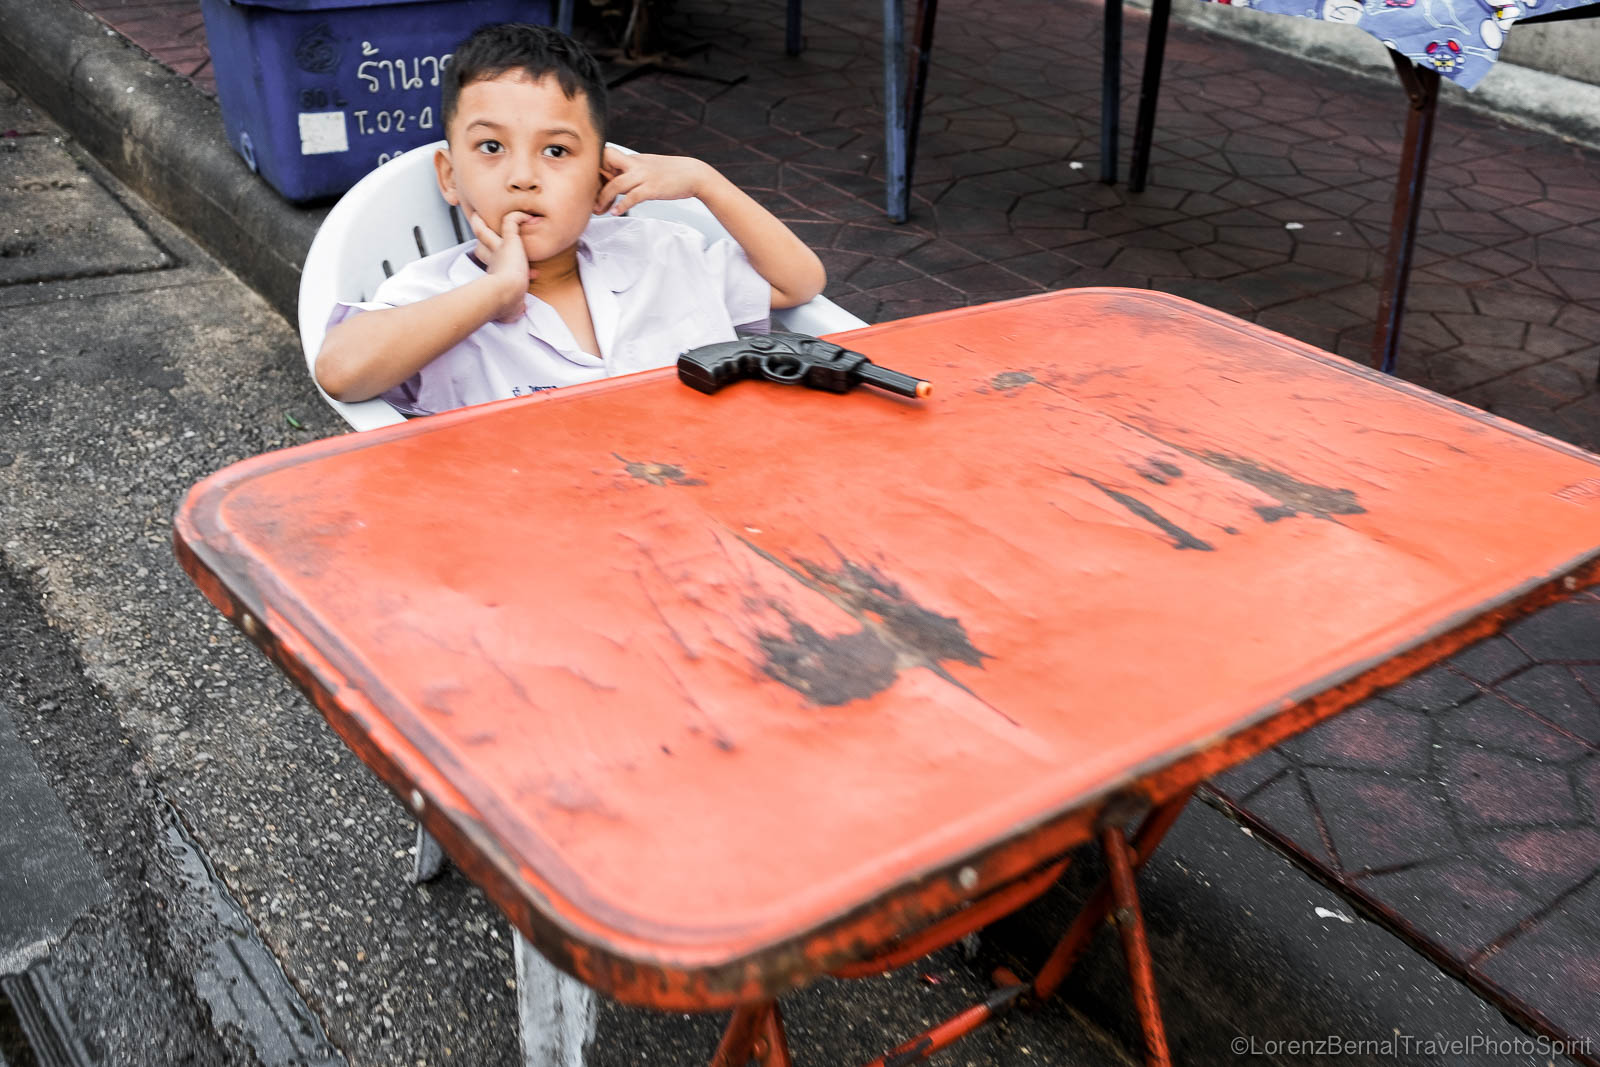 Boys game in Bangkok : a boy is sitting at a table, a plastic gun in front of him.